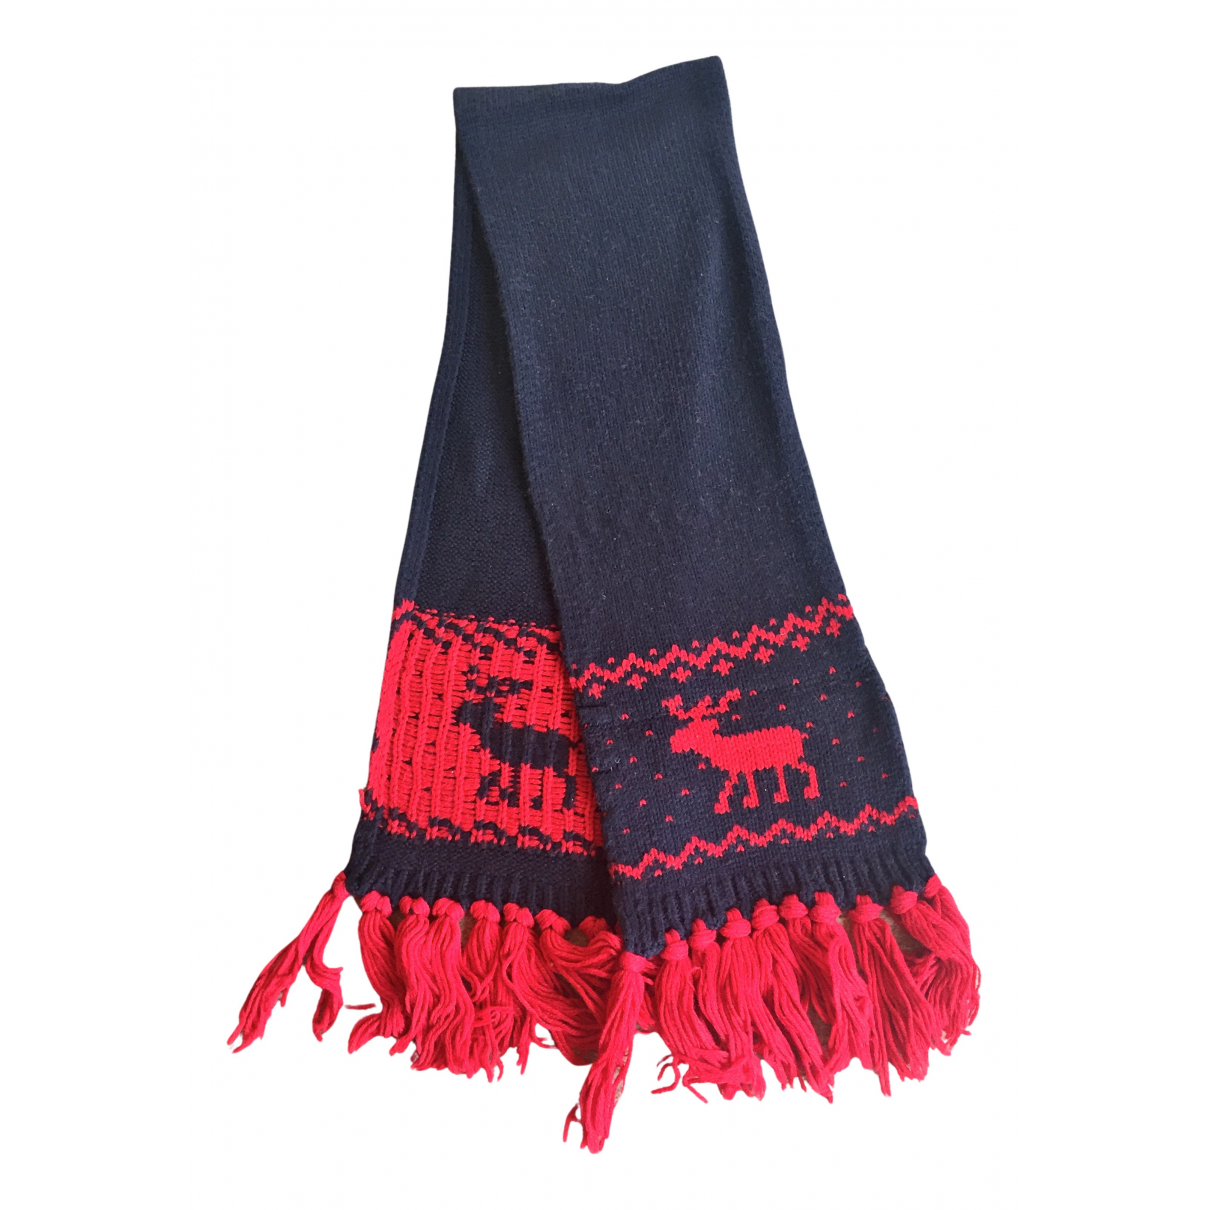 Abercrombie & Fitch N Multicolour scarf for Women N